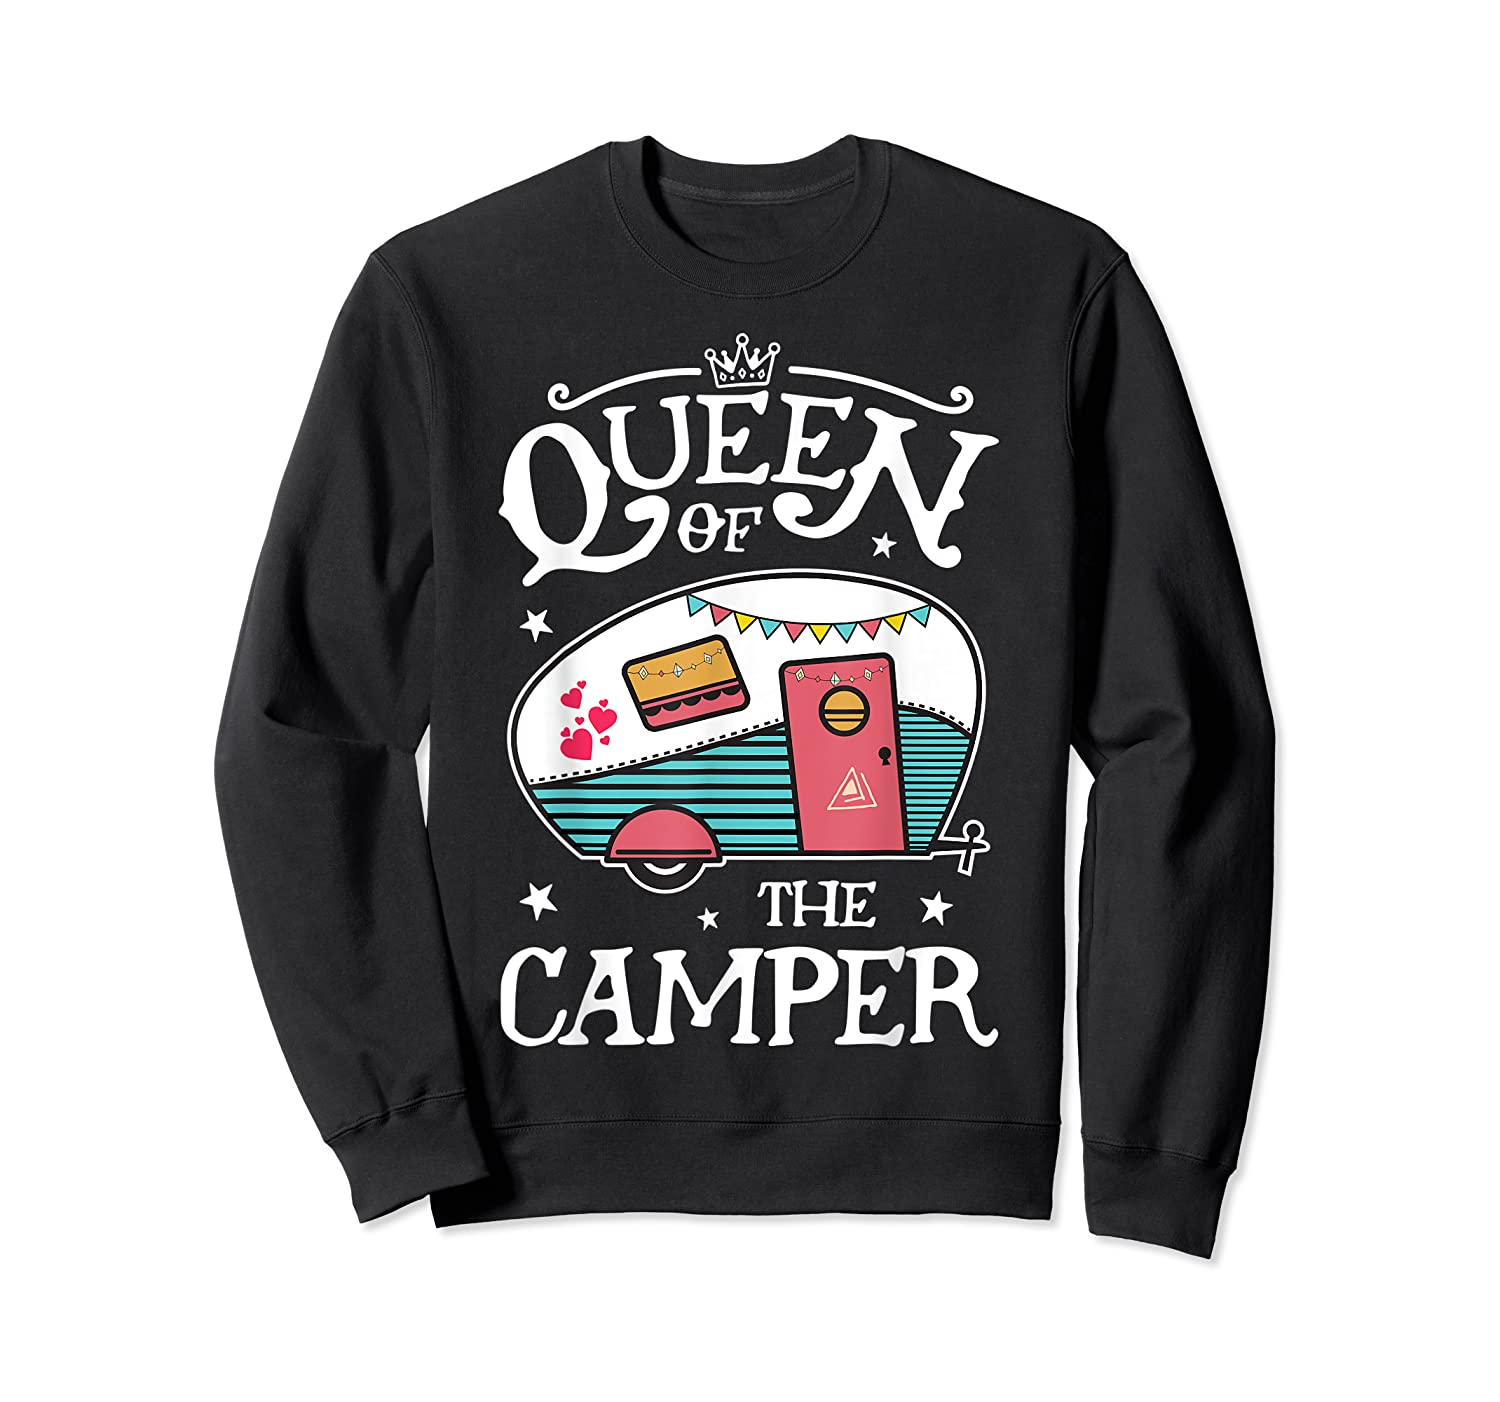 Queen Of The Camper Outdoor Camping Camper Girls Shirts Crewneck Sweater